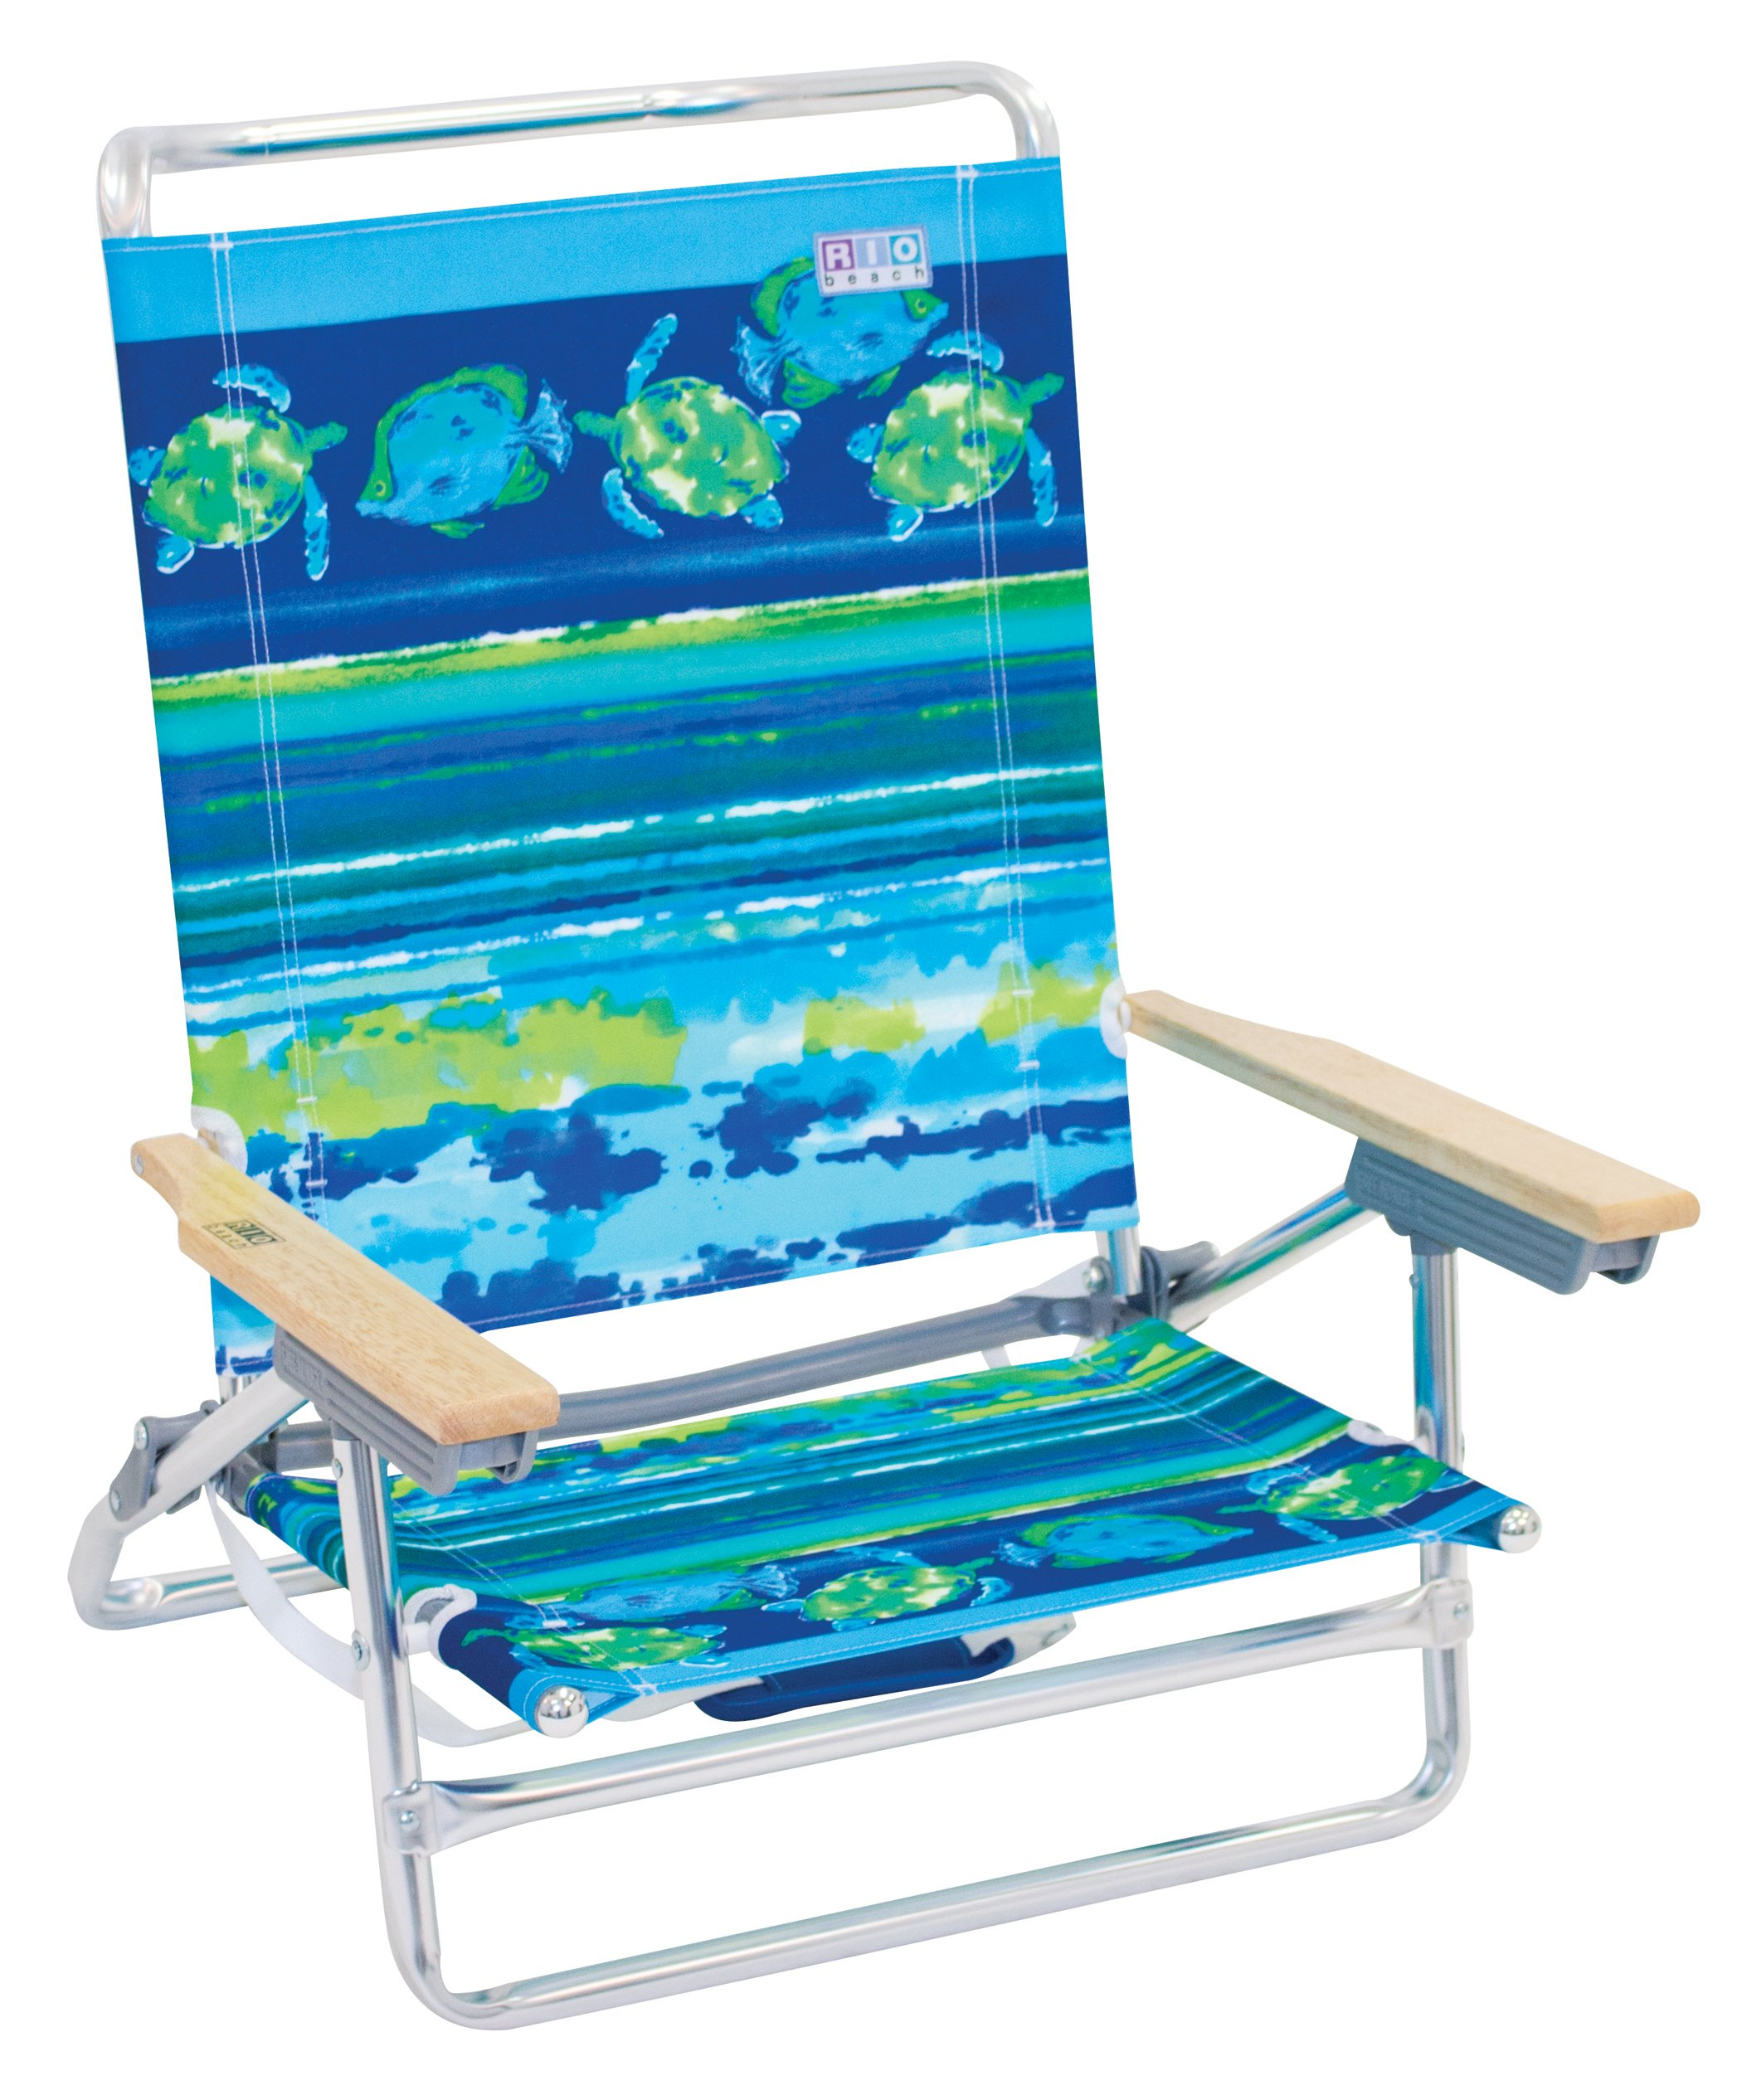 Rio Brands ASC590-807-1 Classic 5 Position Lay Flat Folding Beach Chair, Fish & Turtles by RIO Gear